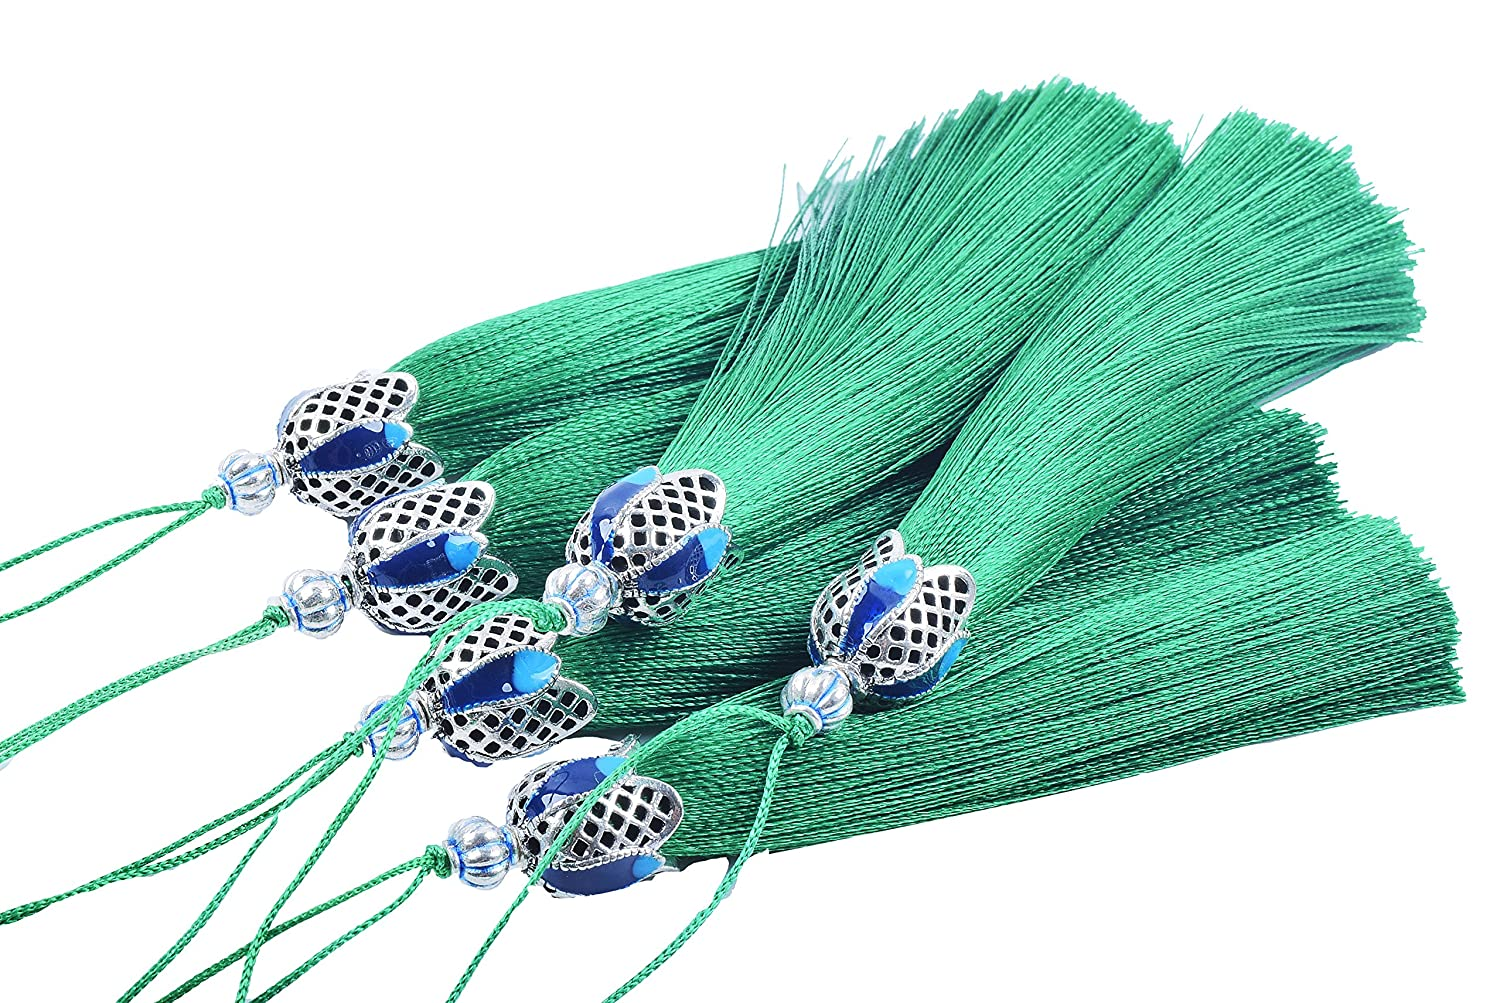 KONMAY 10PCS 8.5cm(3.4'') Craft Tassels with Hollowed Antique Silver Caps and Hanging Loops for Jewelry Making, Crafts Designs, Decorations